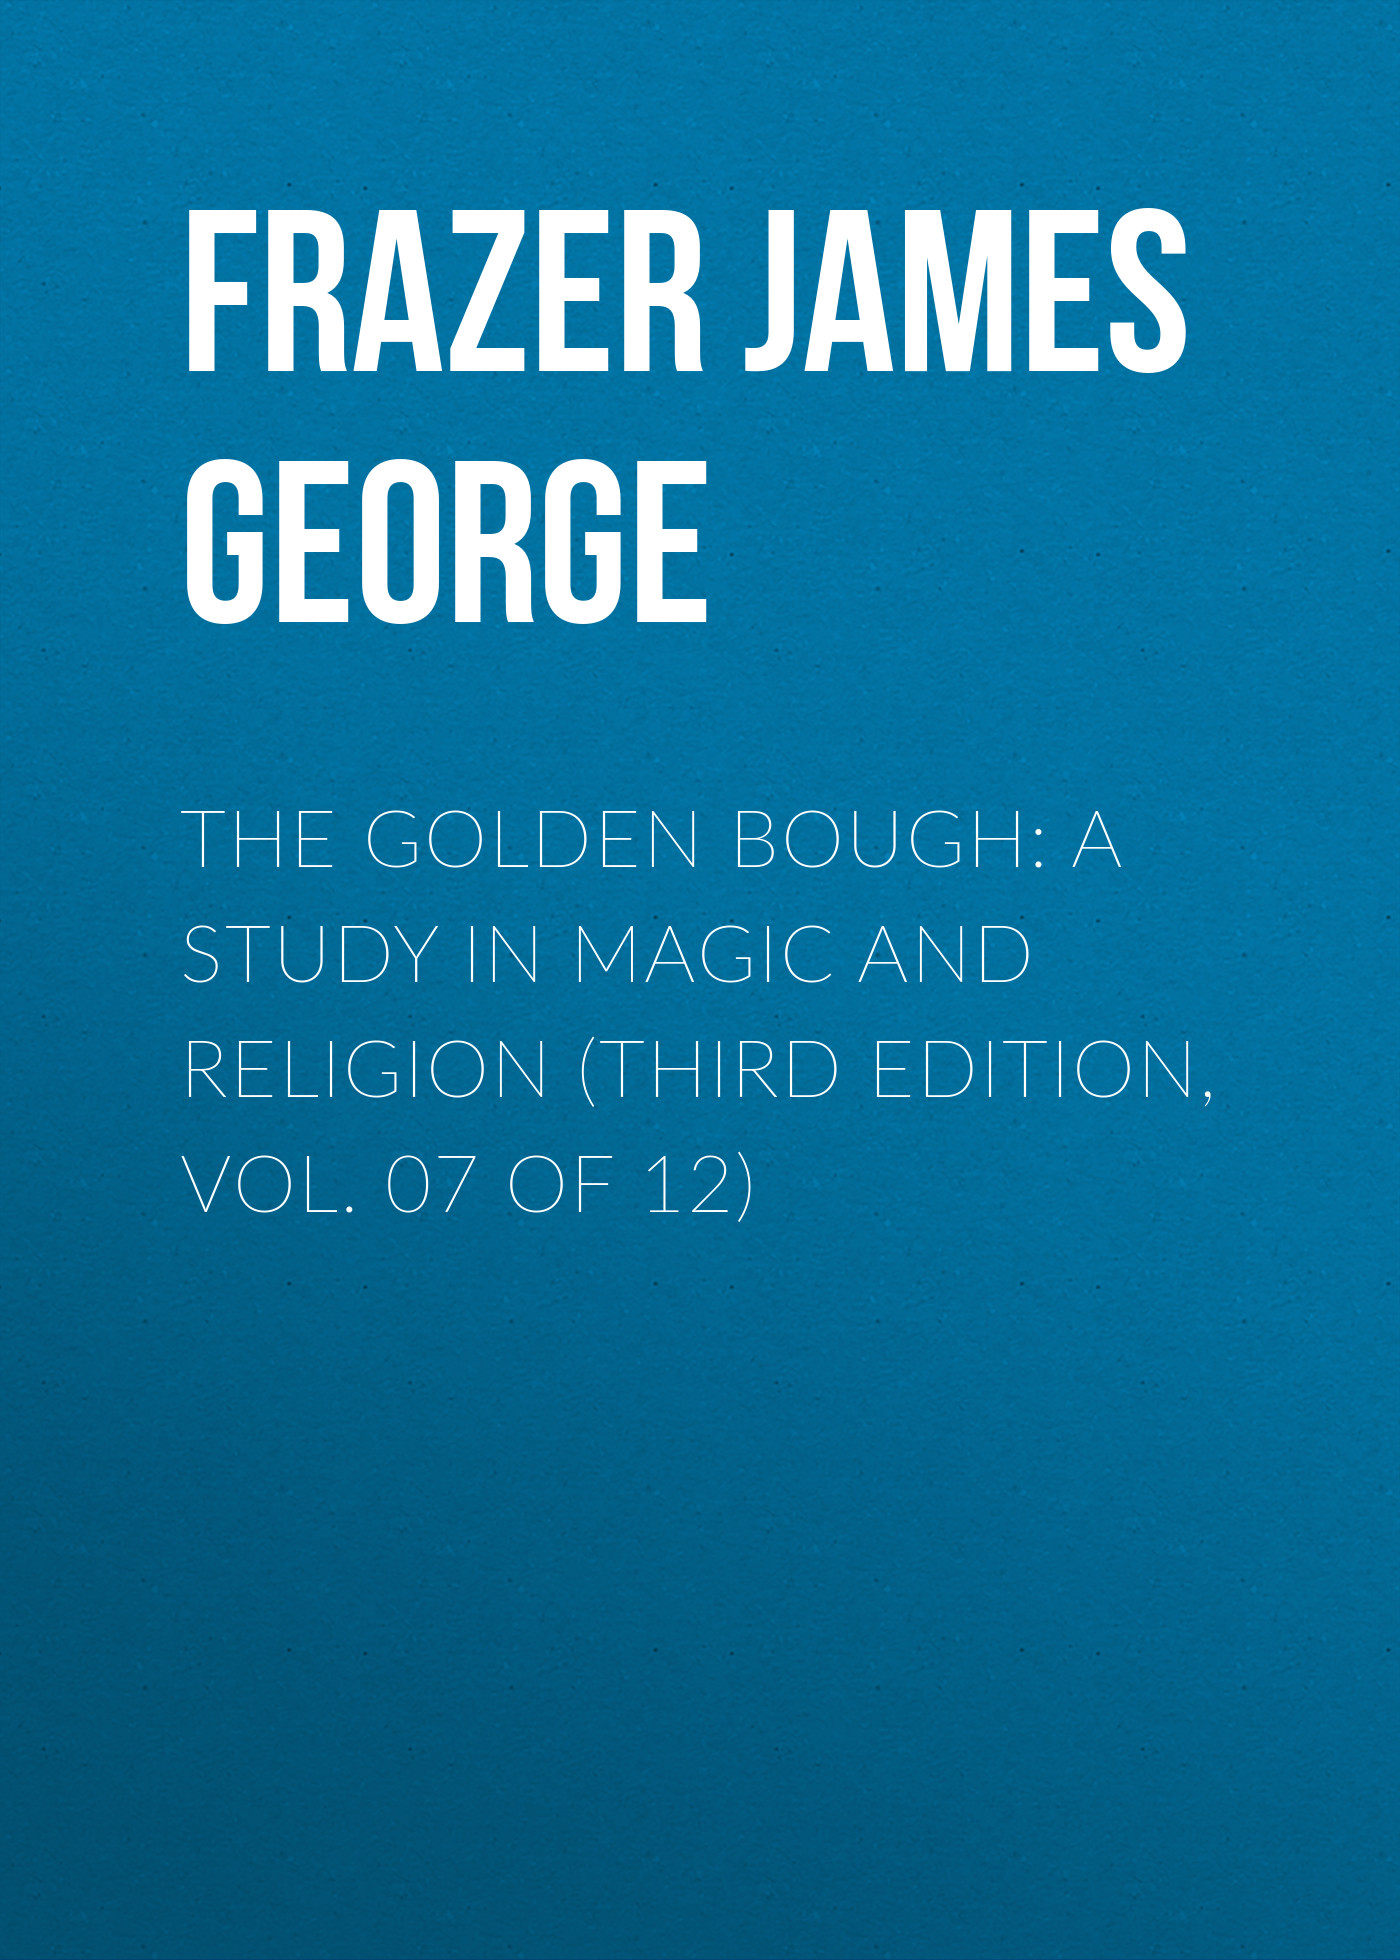 Frazer James George The Golden Bough: A Study in Magic and Religion (Third Edition, Vol. 07 of 12)